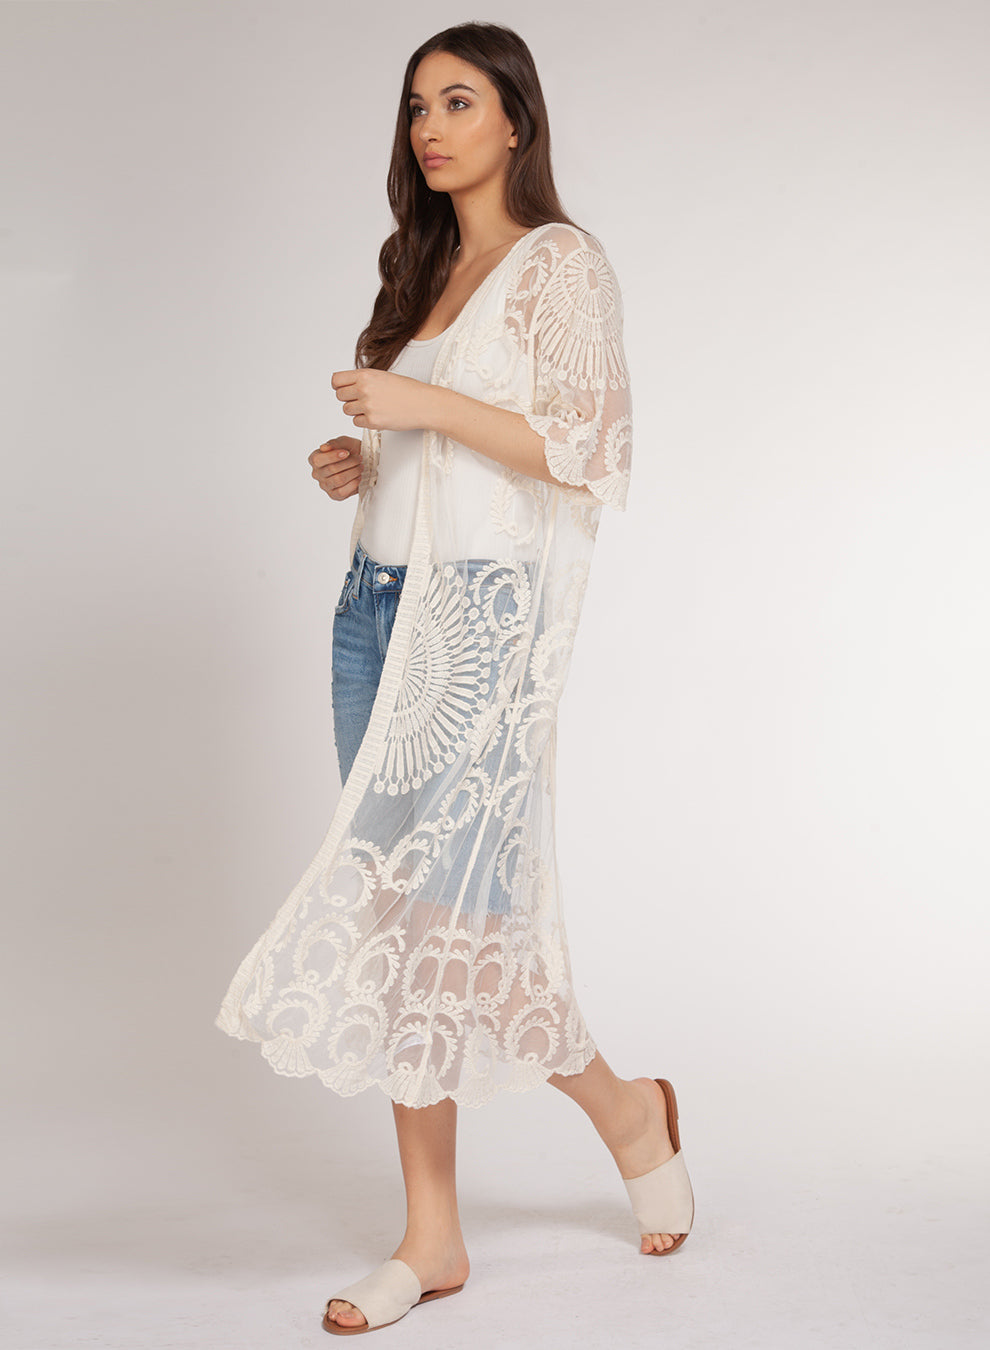 DEX CLOTHING LADIES EMBROIDERED MIESH IVORY KIMONO